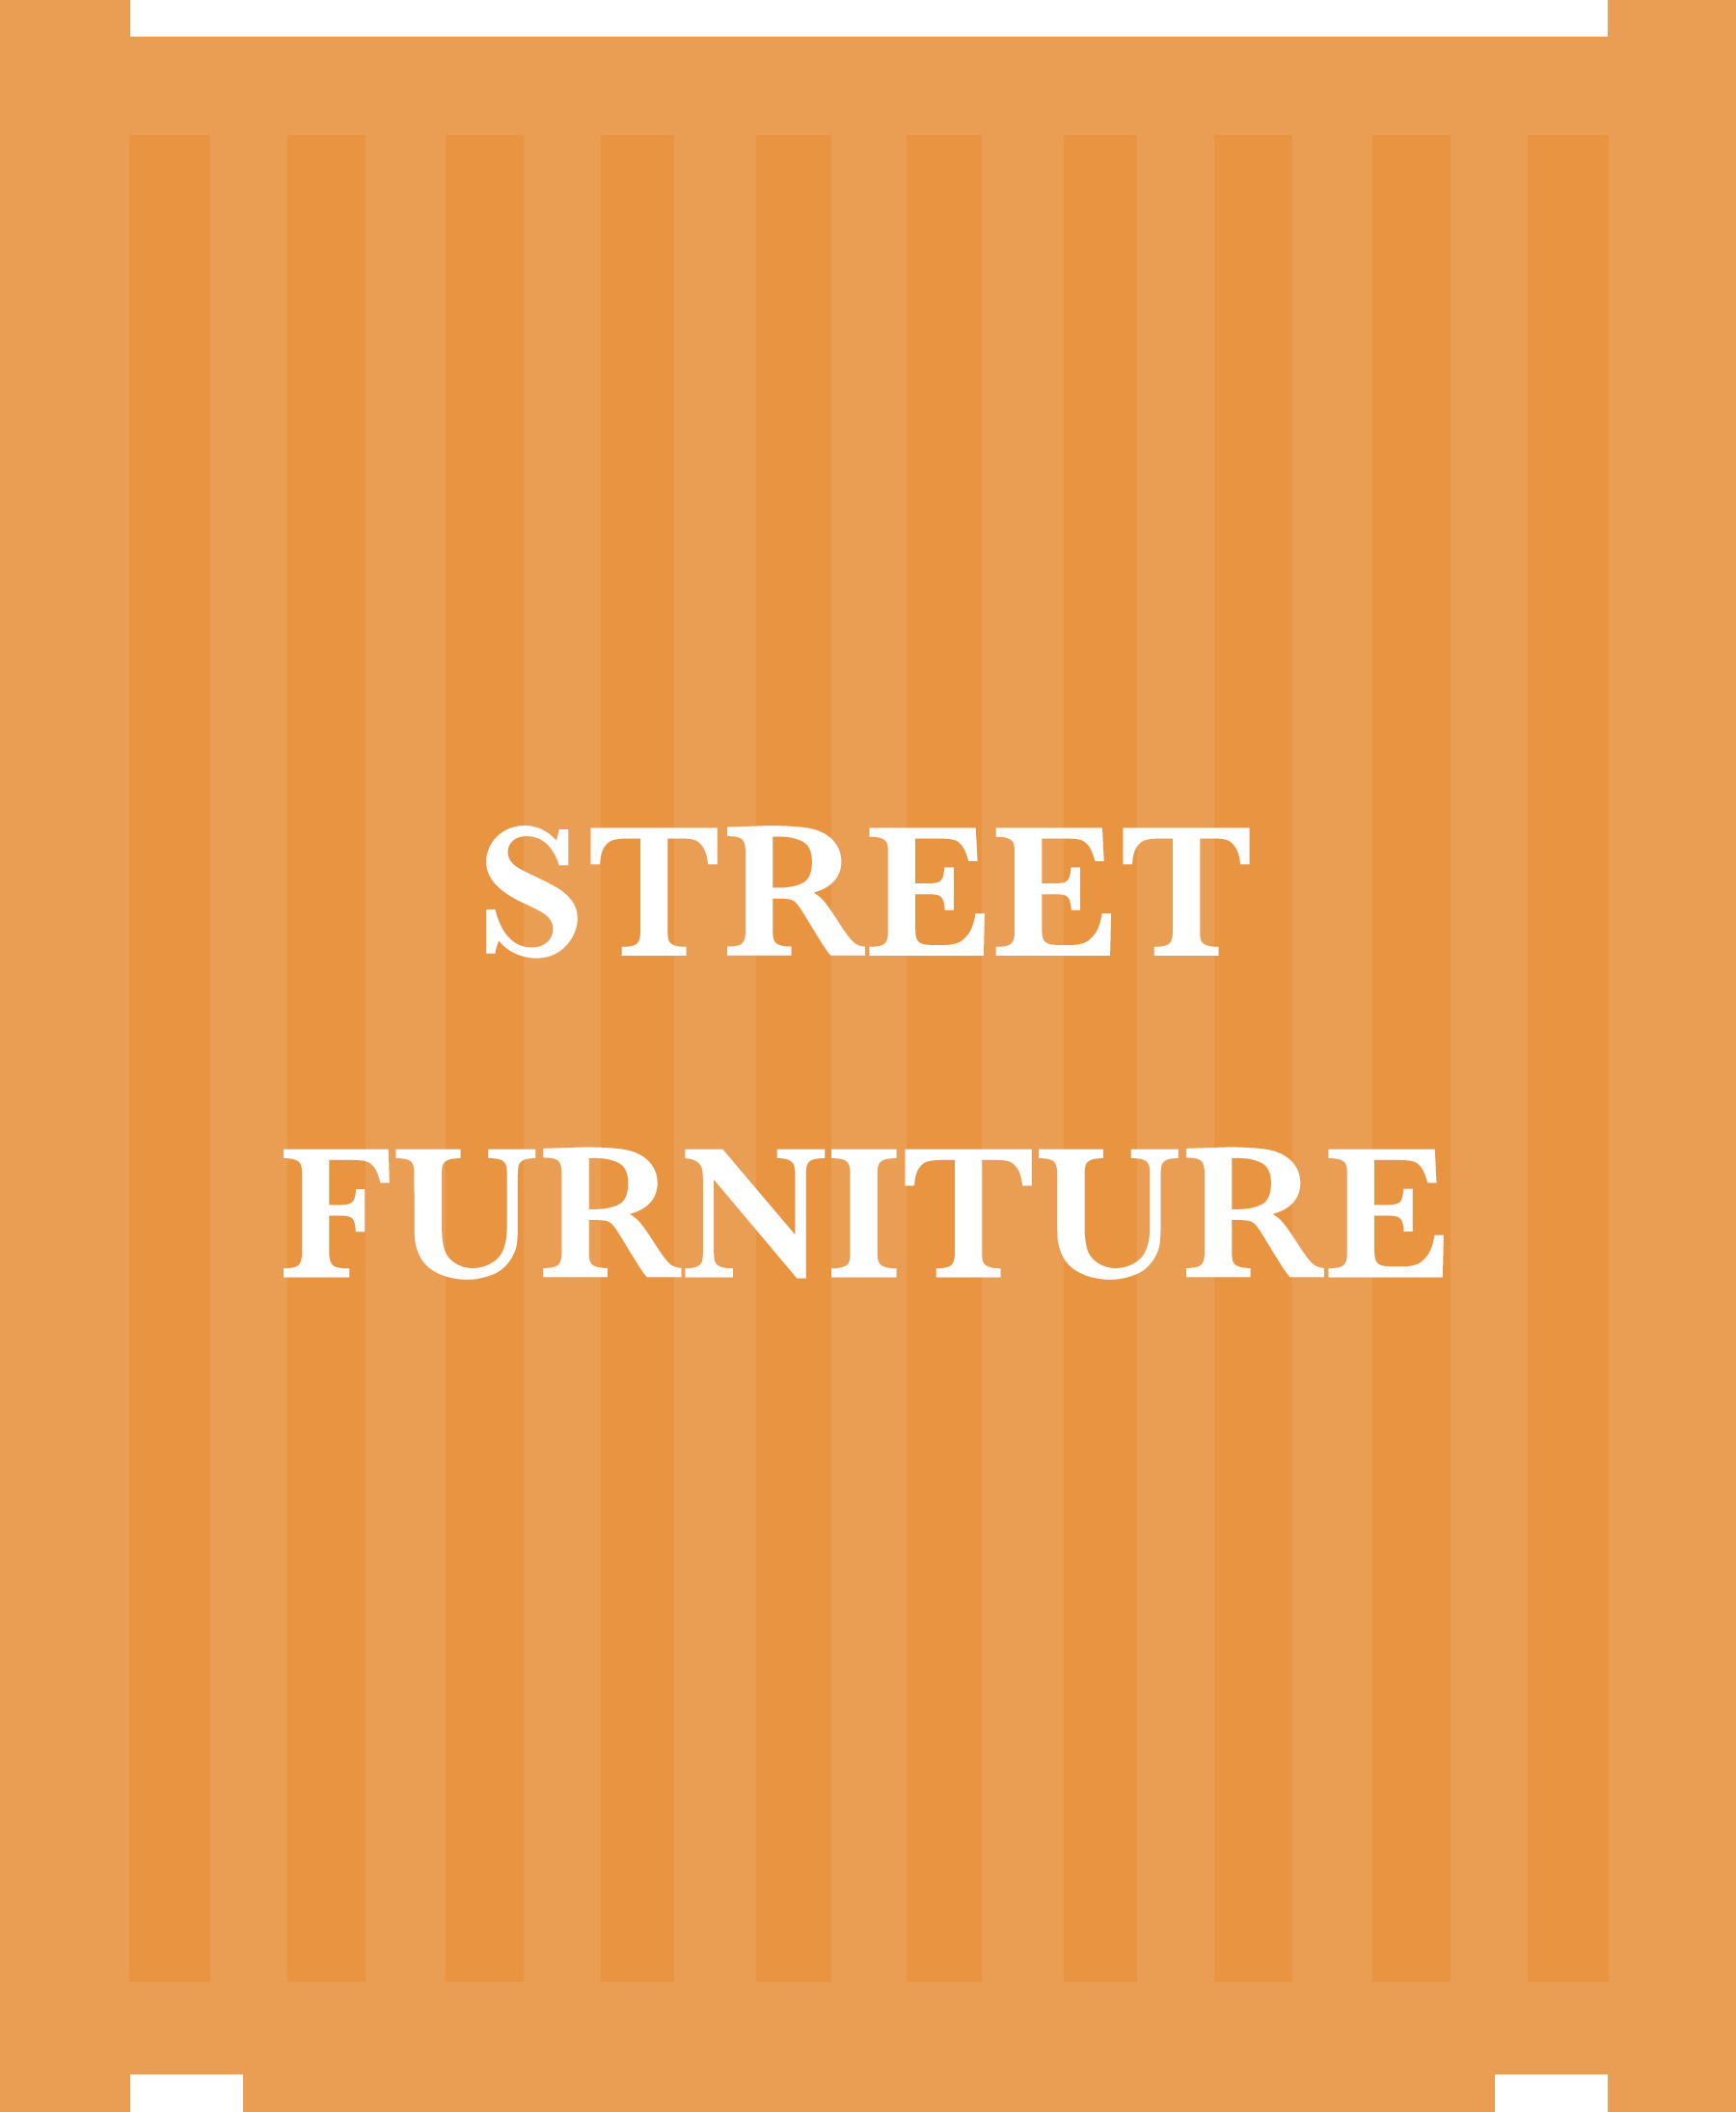 8STREET FURNITURE